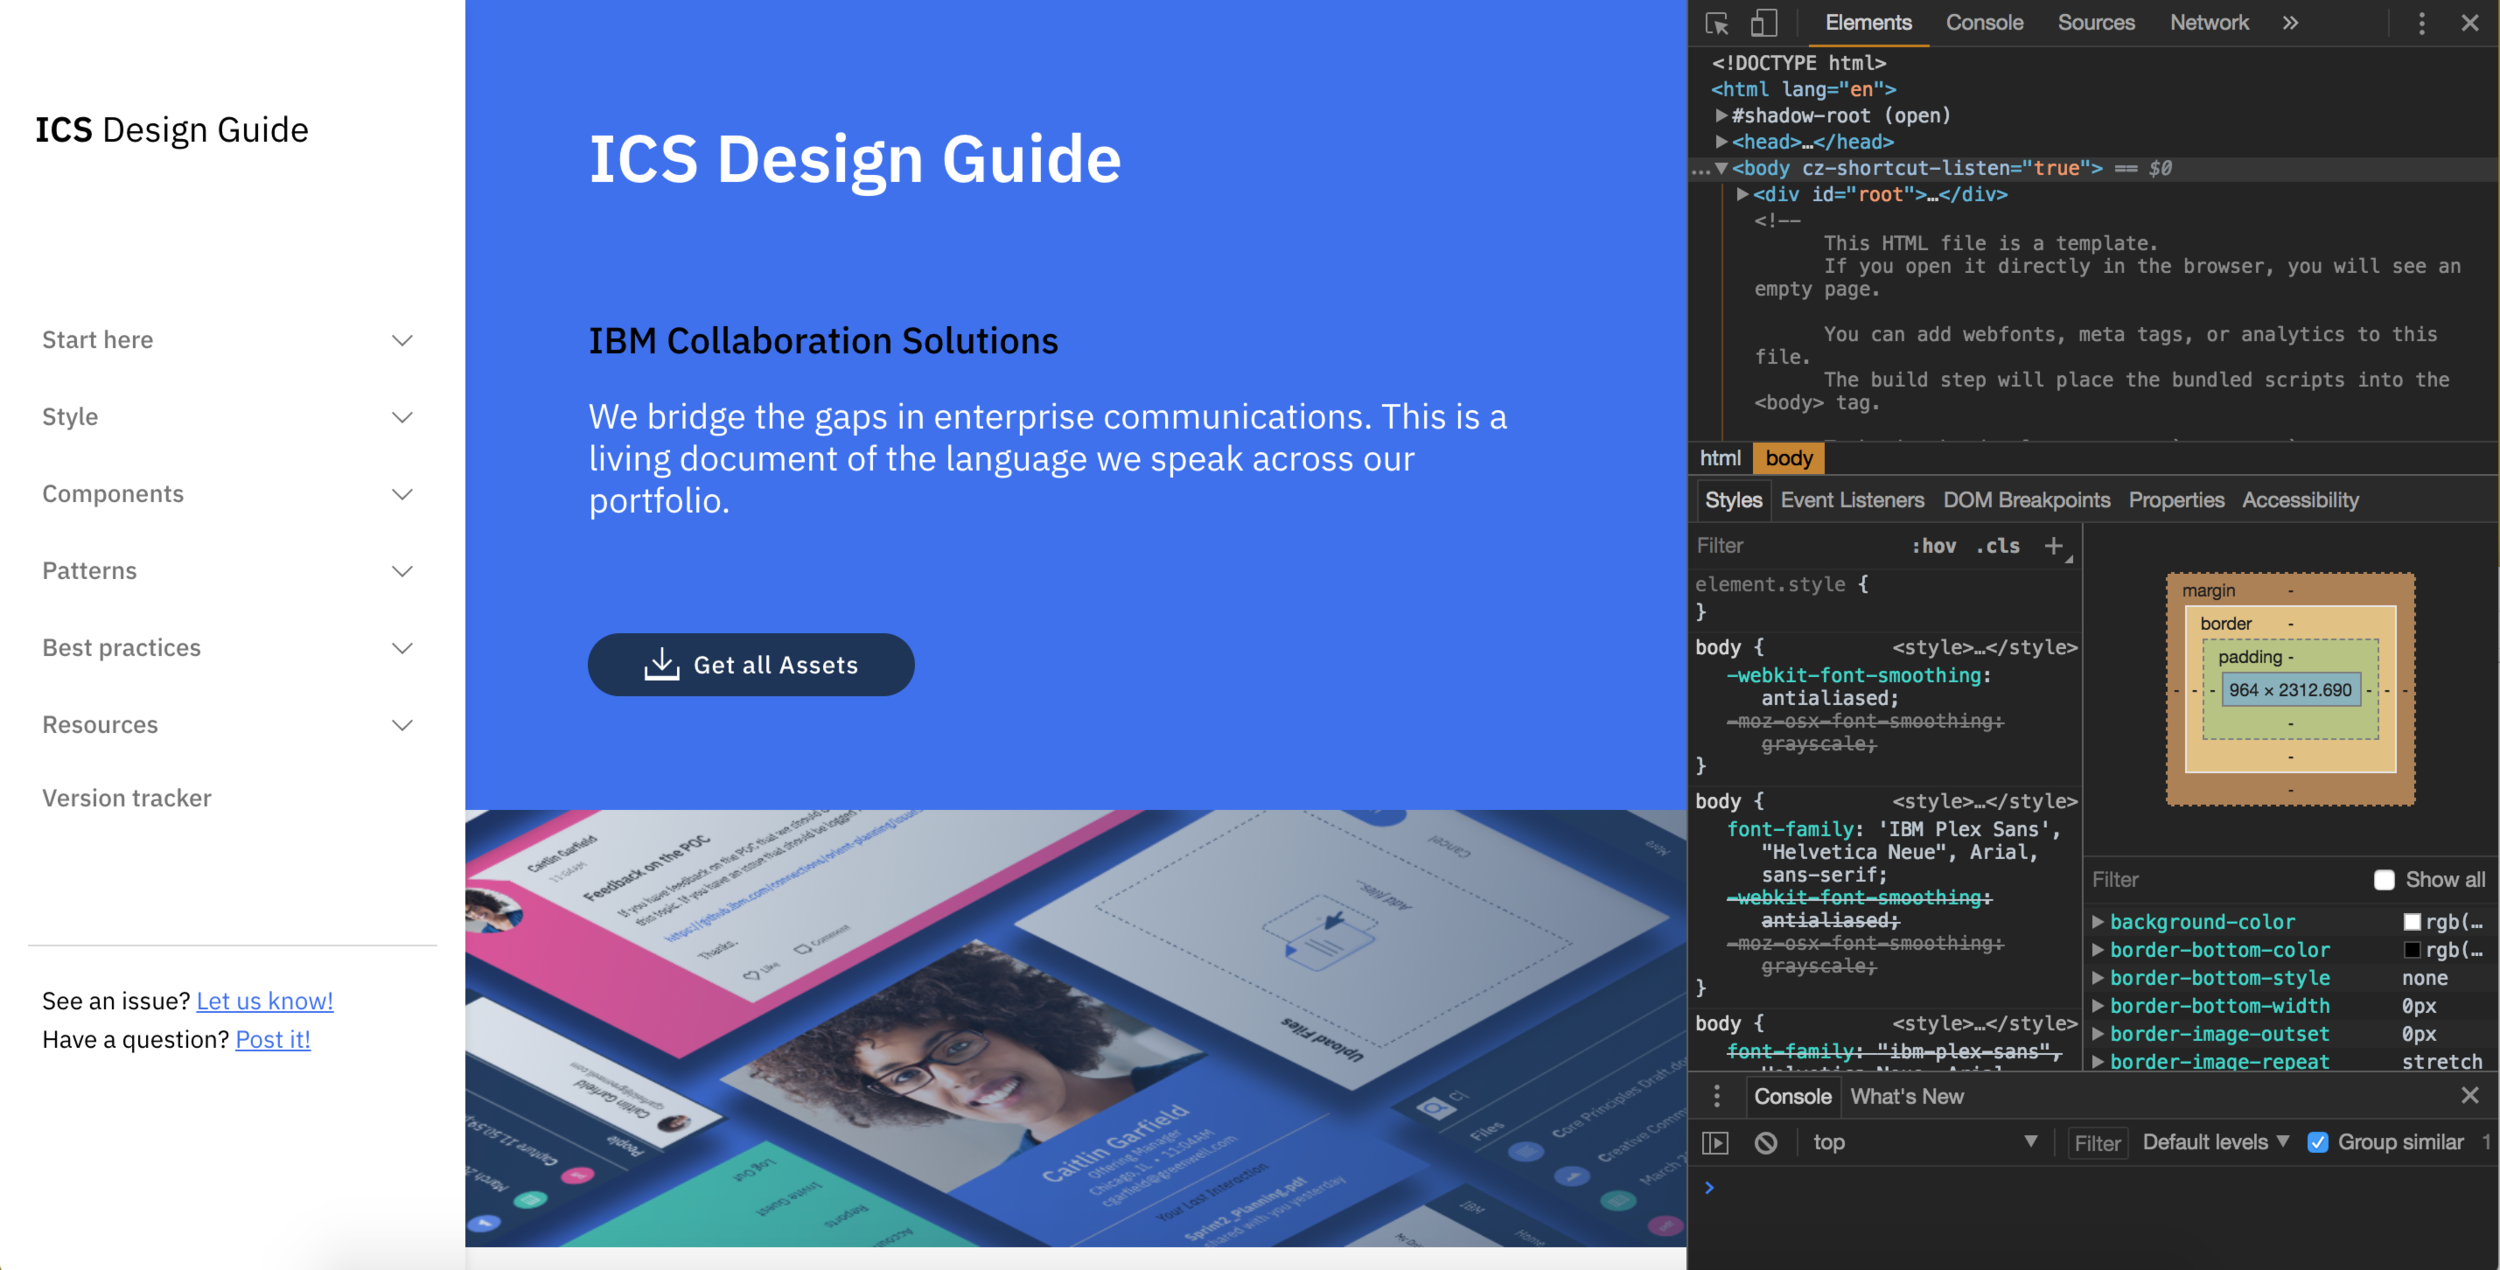 The framework for the current design site with our updated content and navigation.